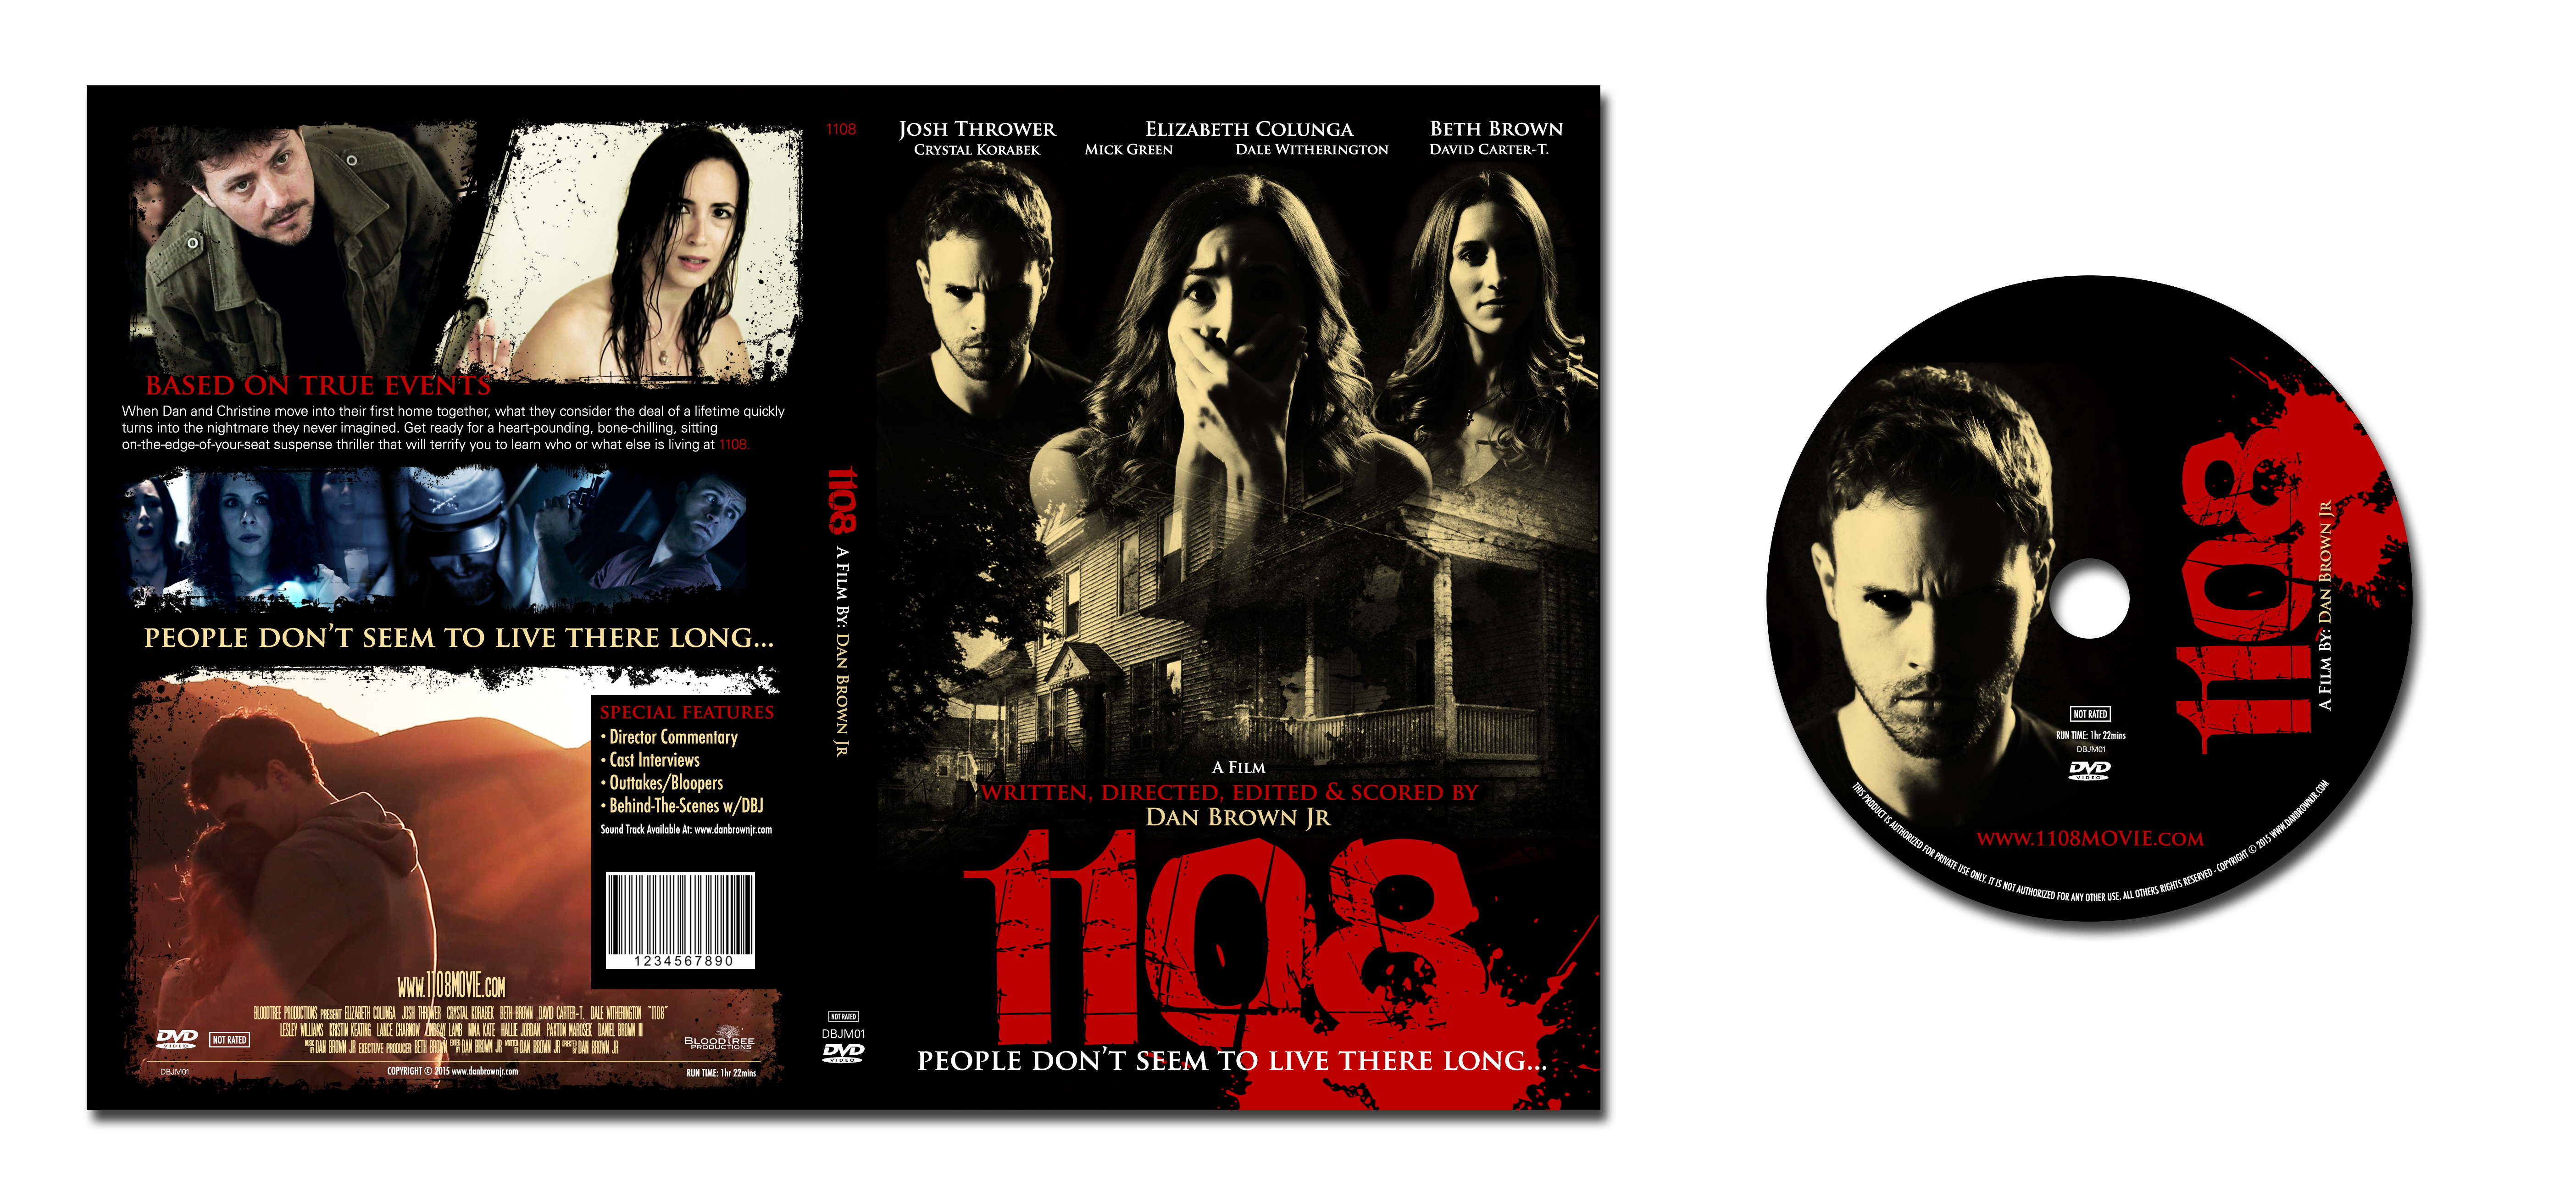 The 1108 DVD Case & Disc Art is Now Complete! – Help Proofread & Join The Rally!